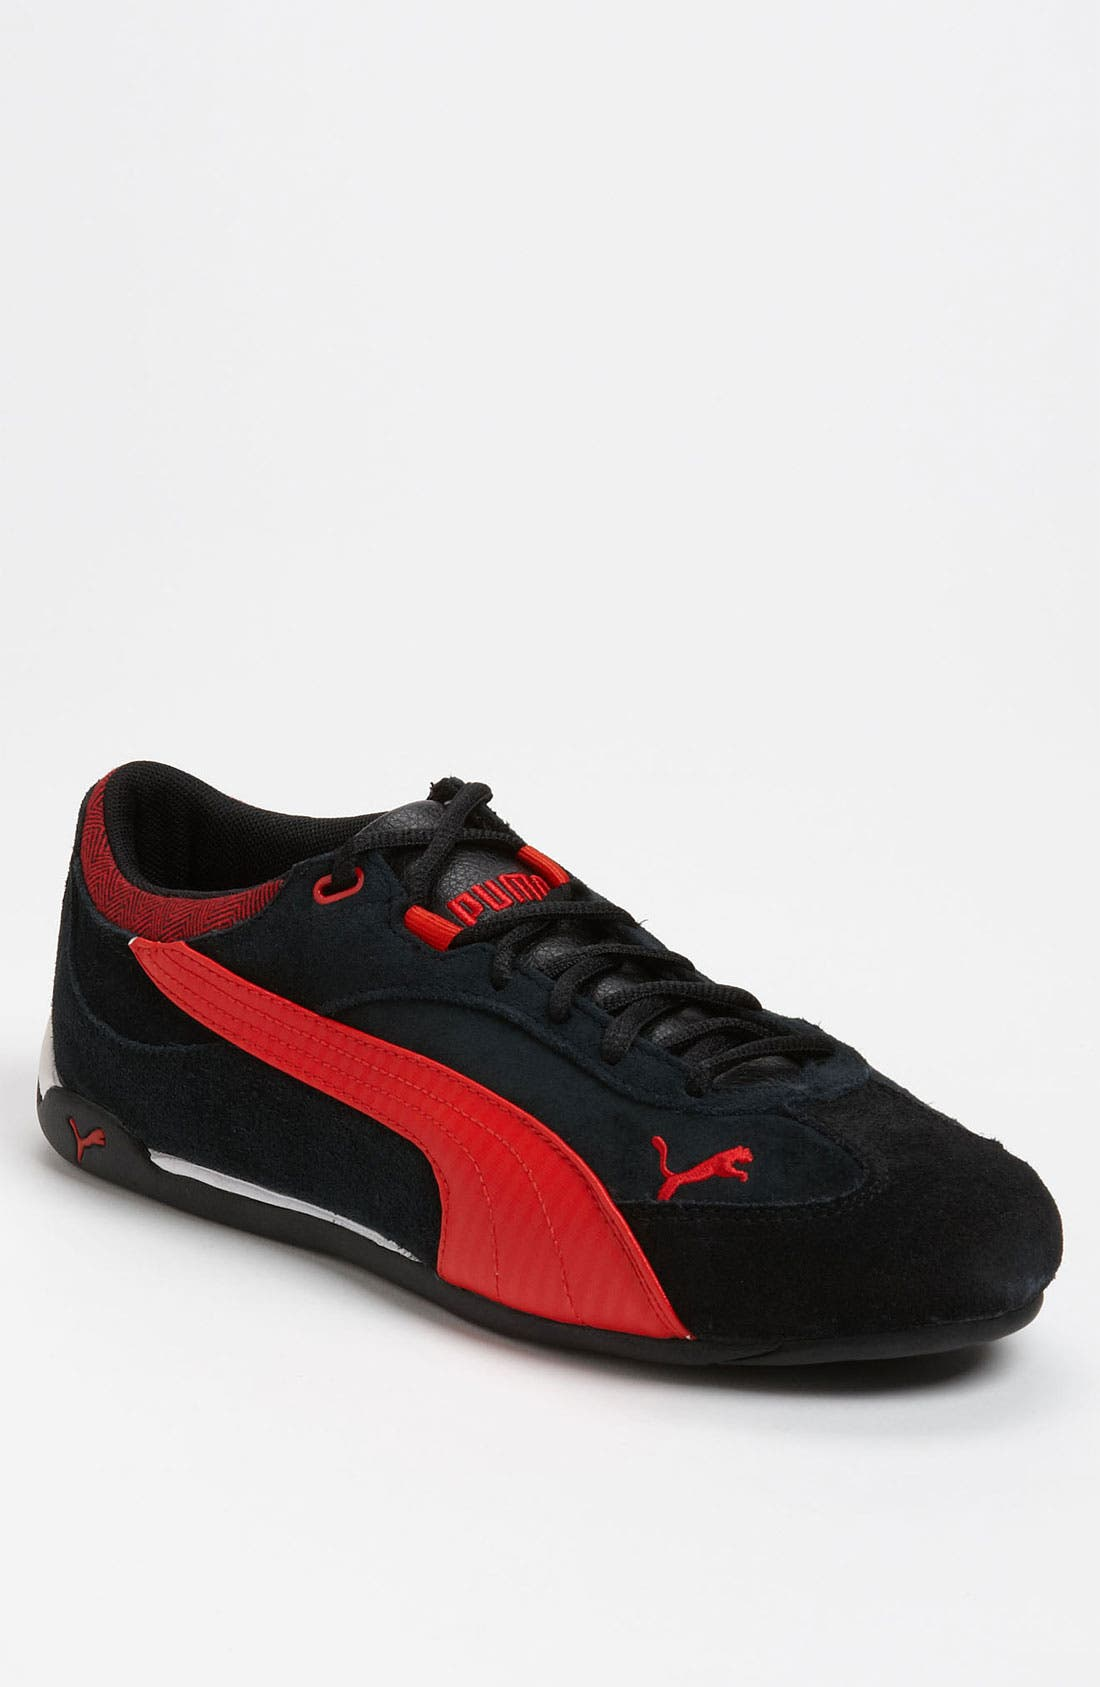 Alternate Image 1 Selected - PUMA 'Fast Cat' Sneaker (Men)